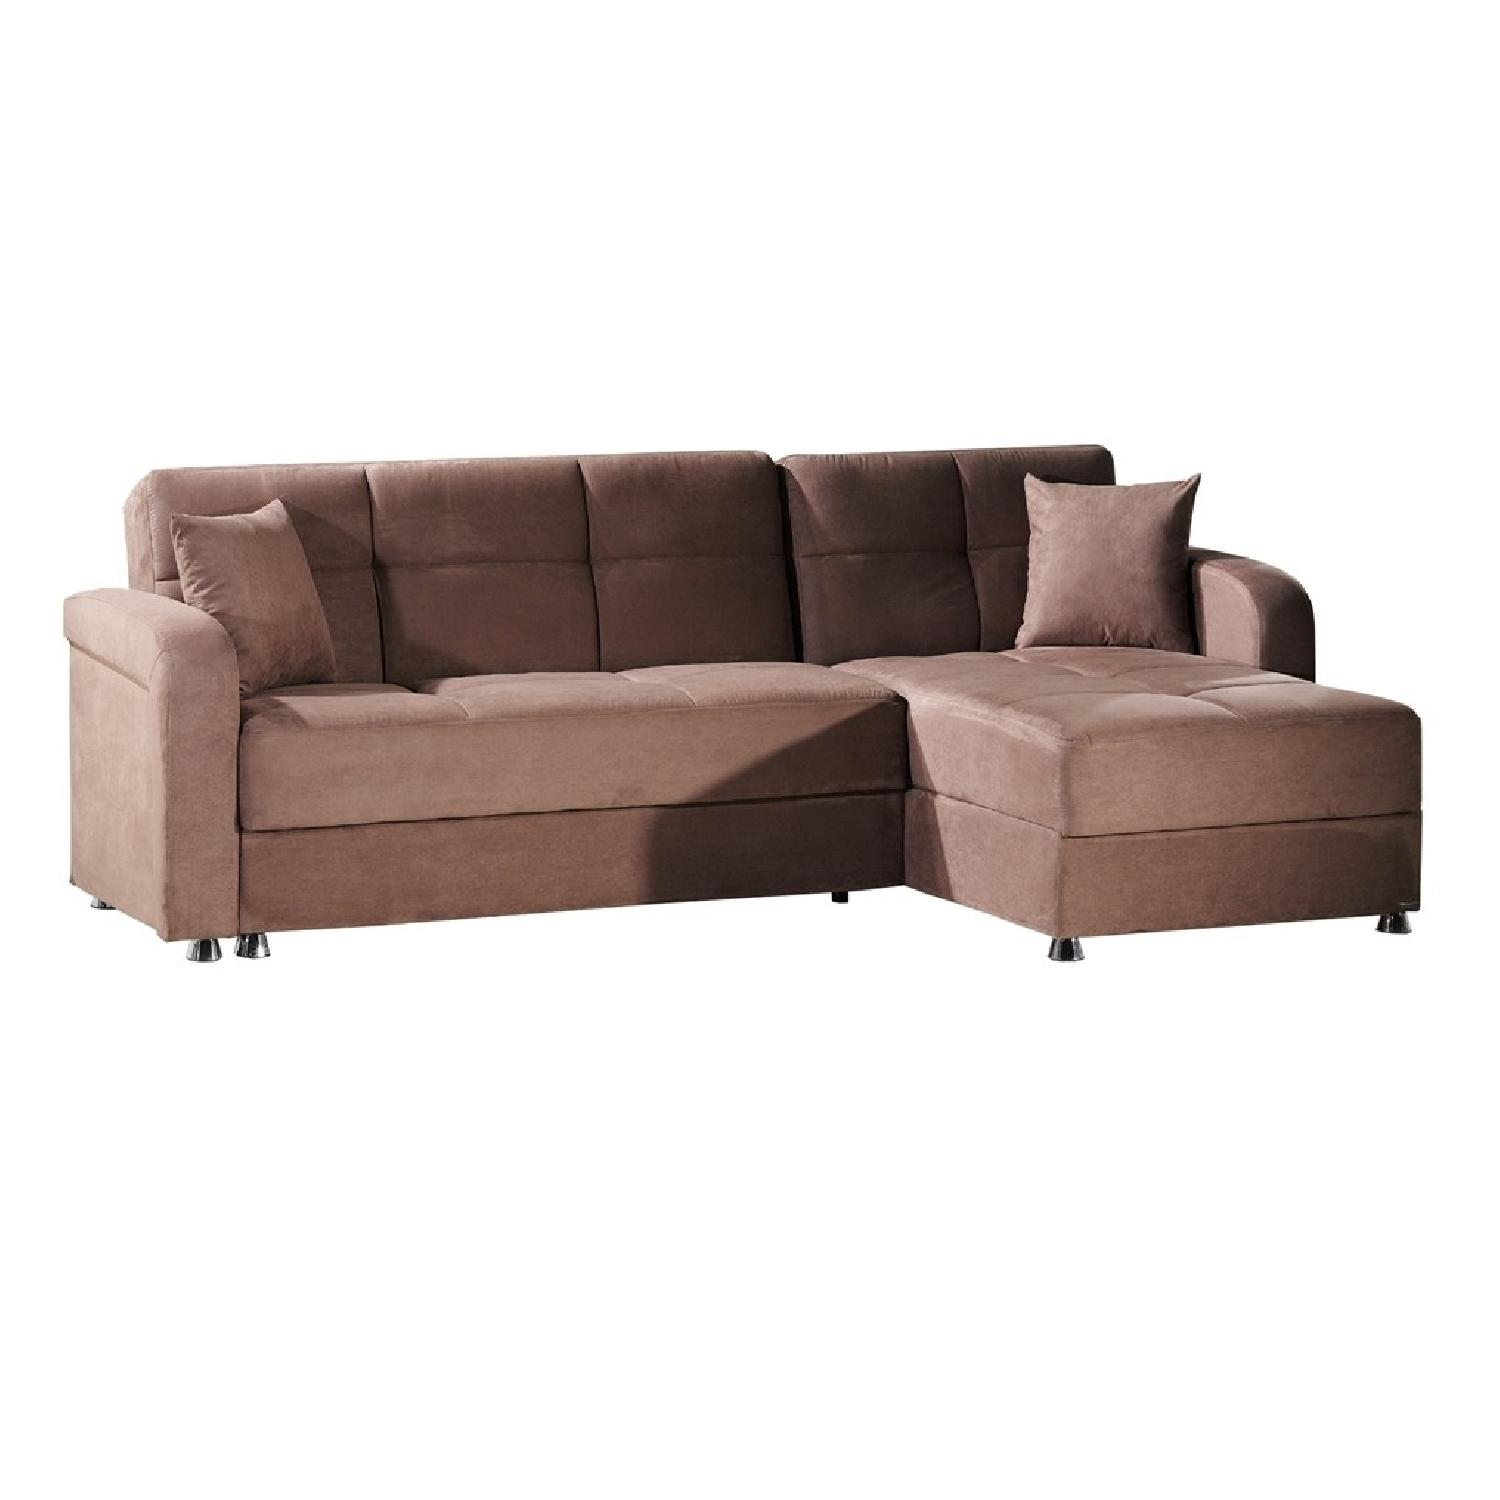 Istikbal 2 Piece Vision Diego Brown Sleeper Sectional Sofa ...